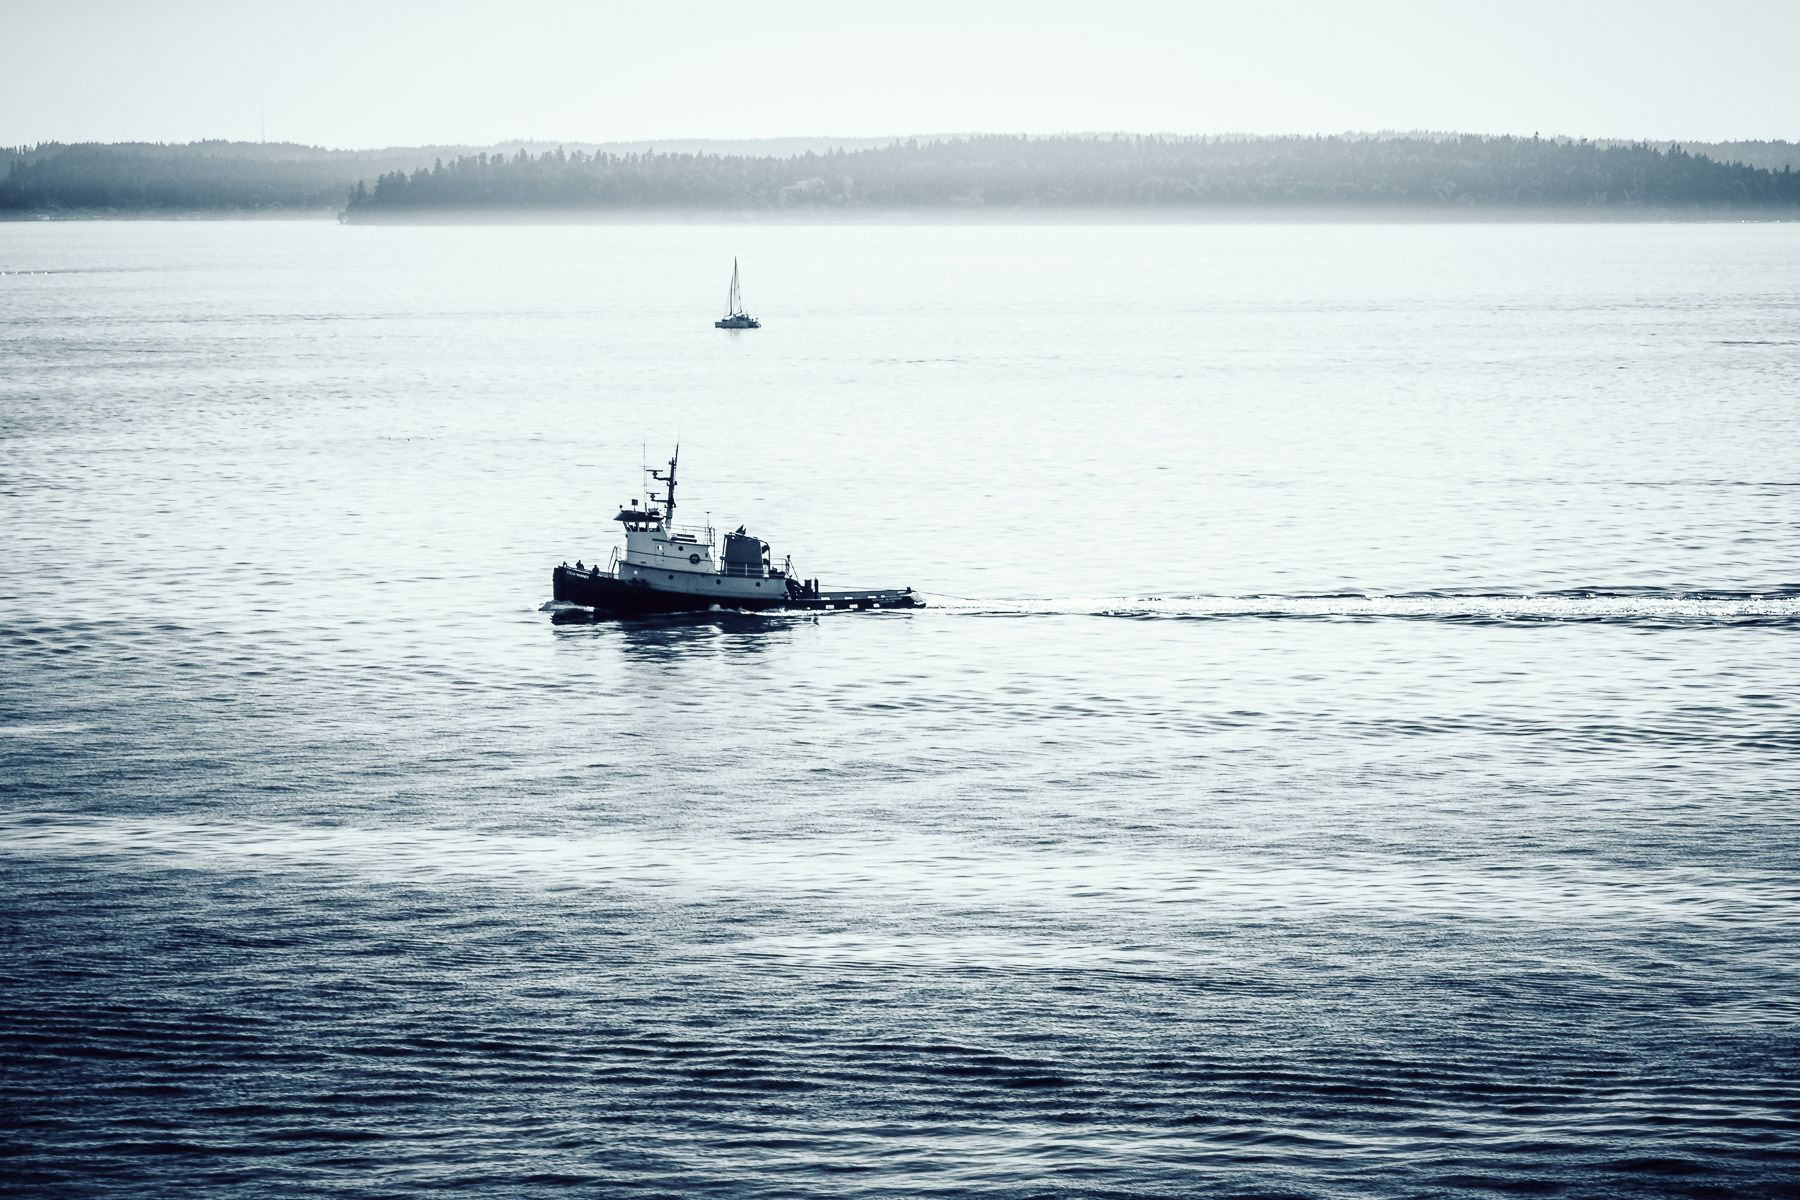 A boat motors through the waters of Washington's Puget Sound near Seattle.